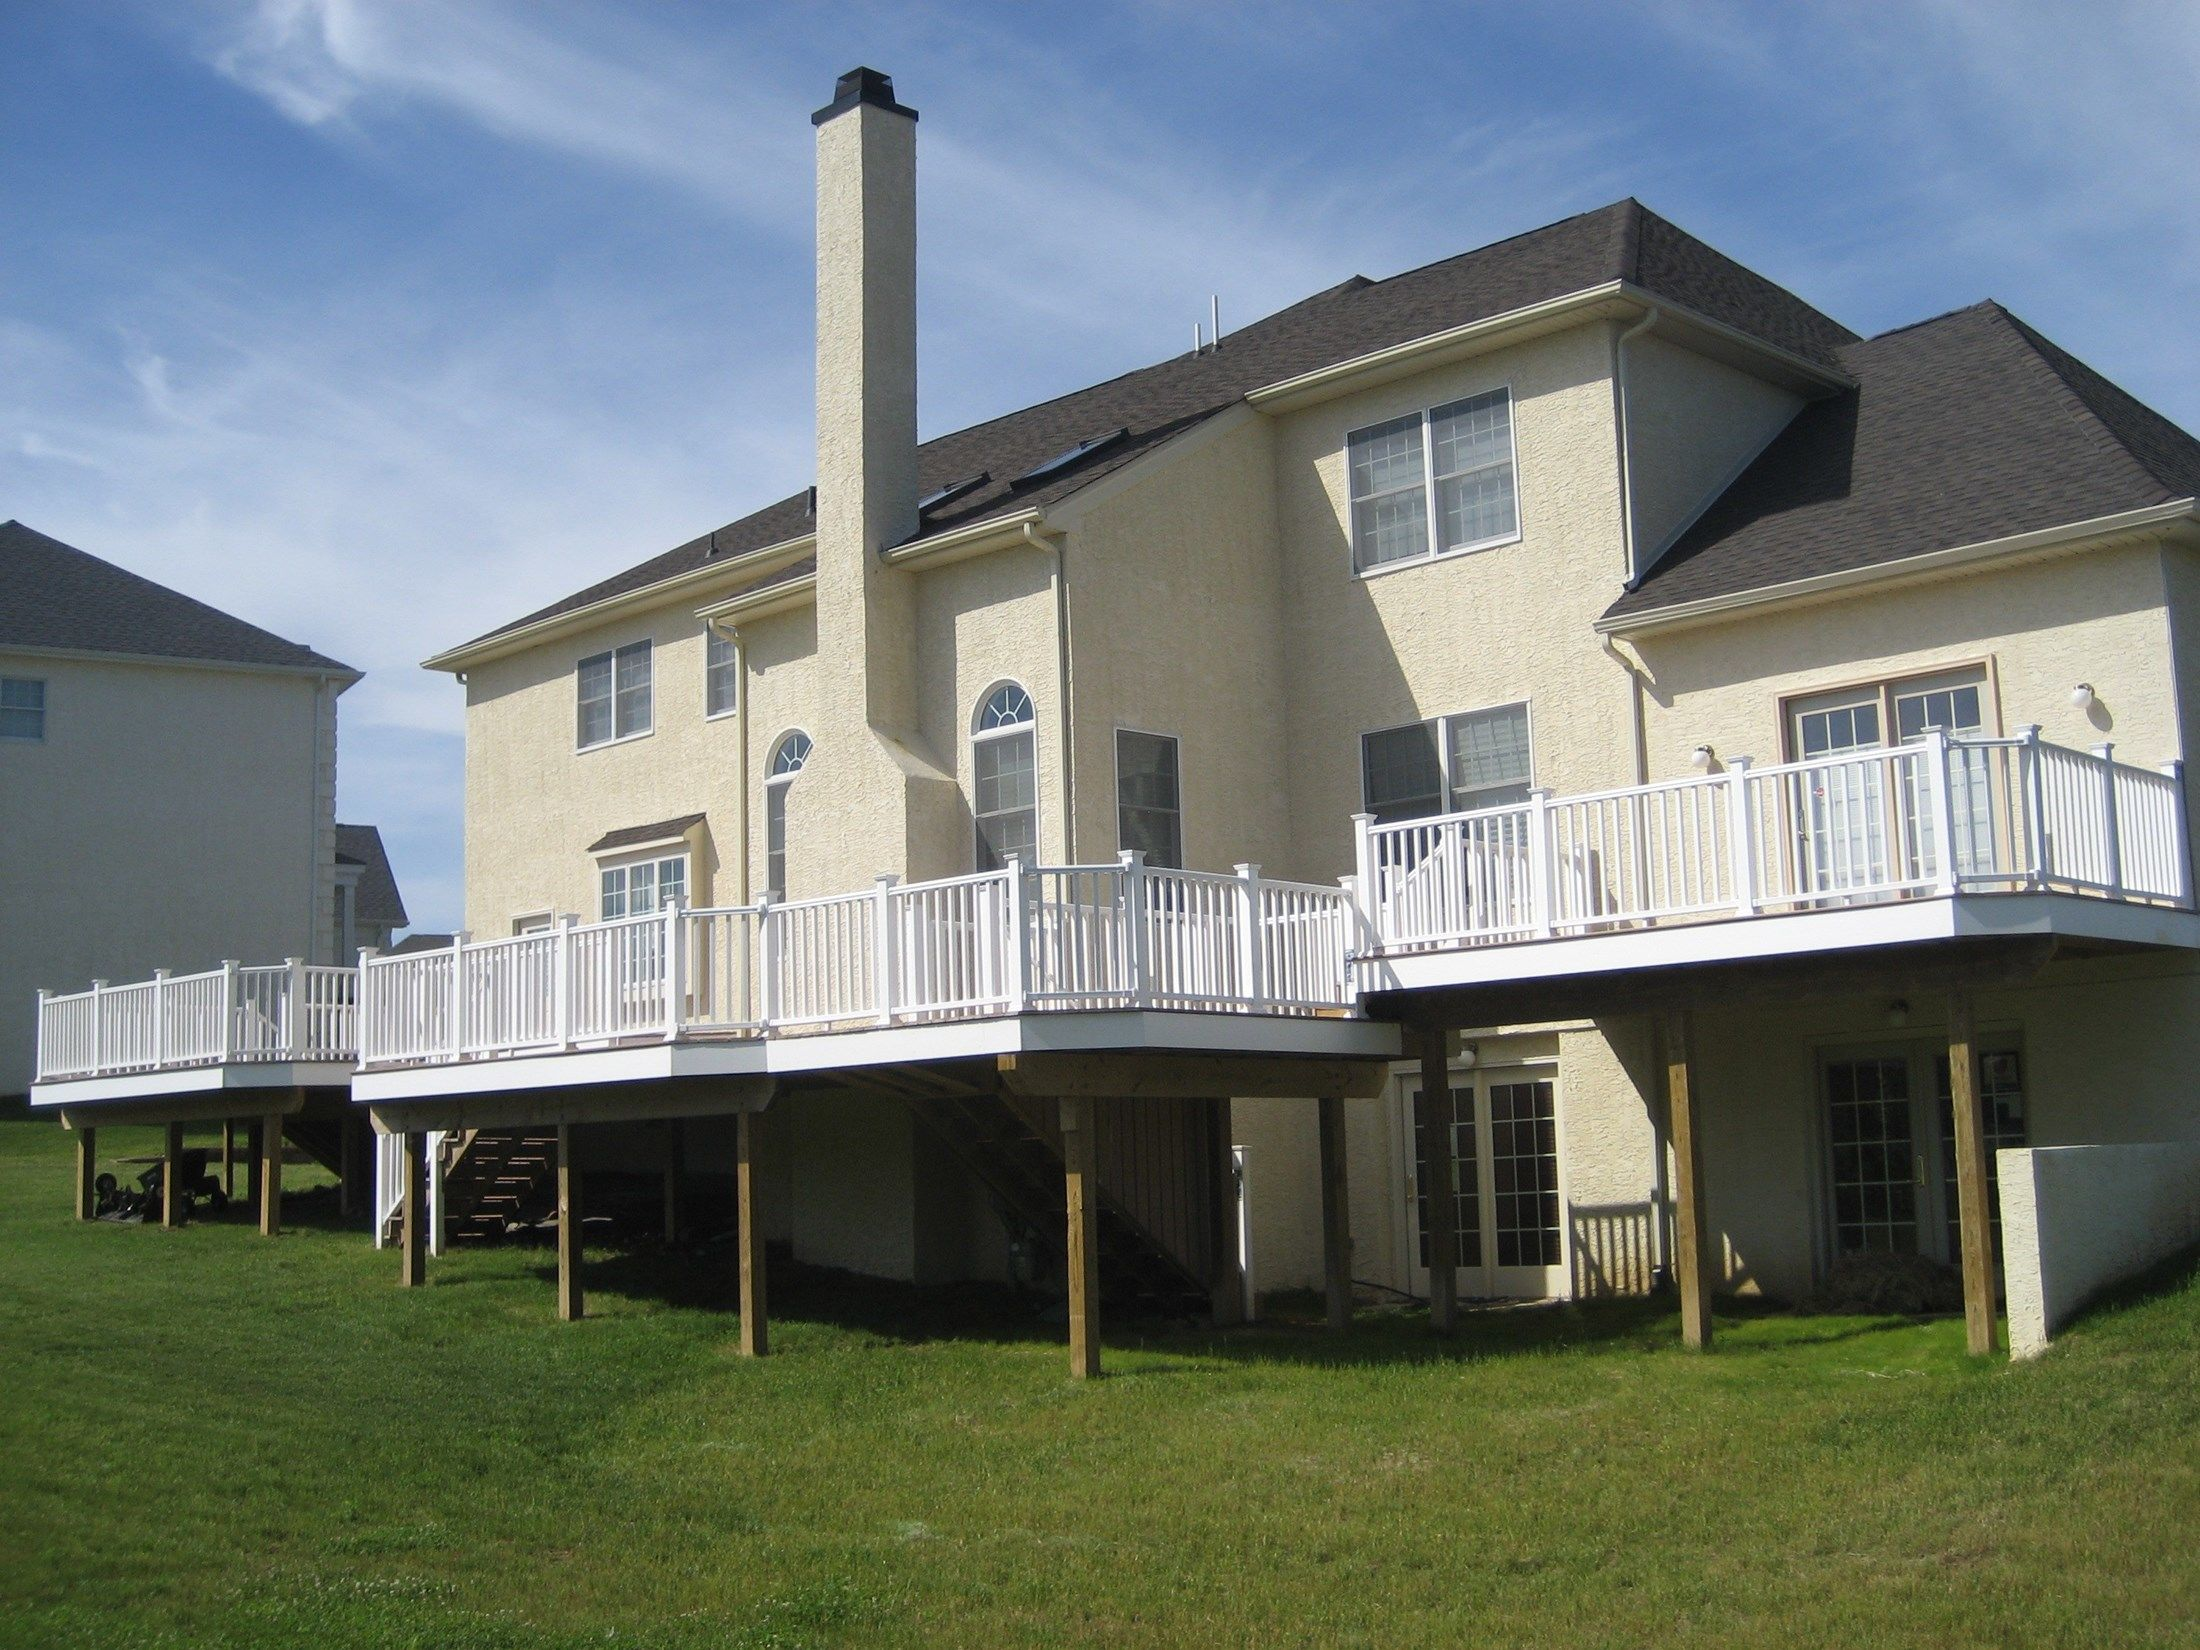 Composite Decks With PVC Vinyl Railing - Picture 6433